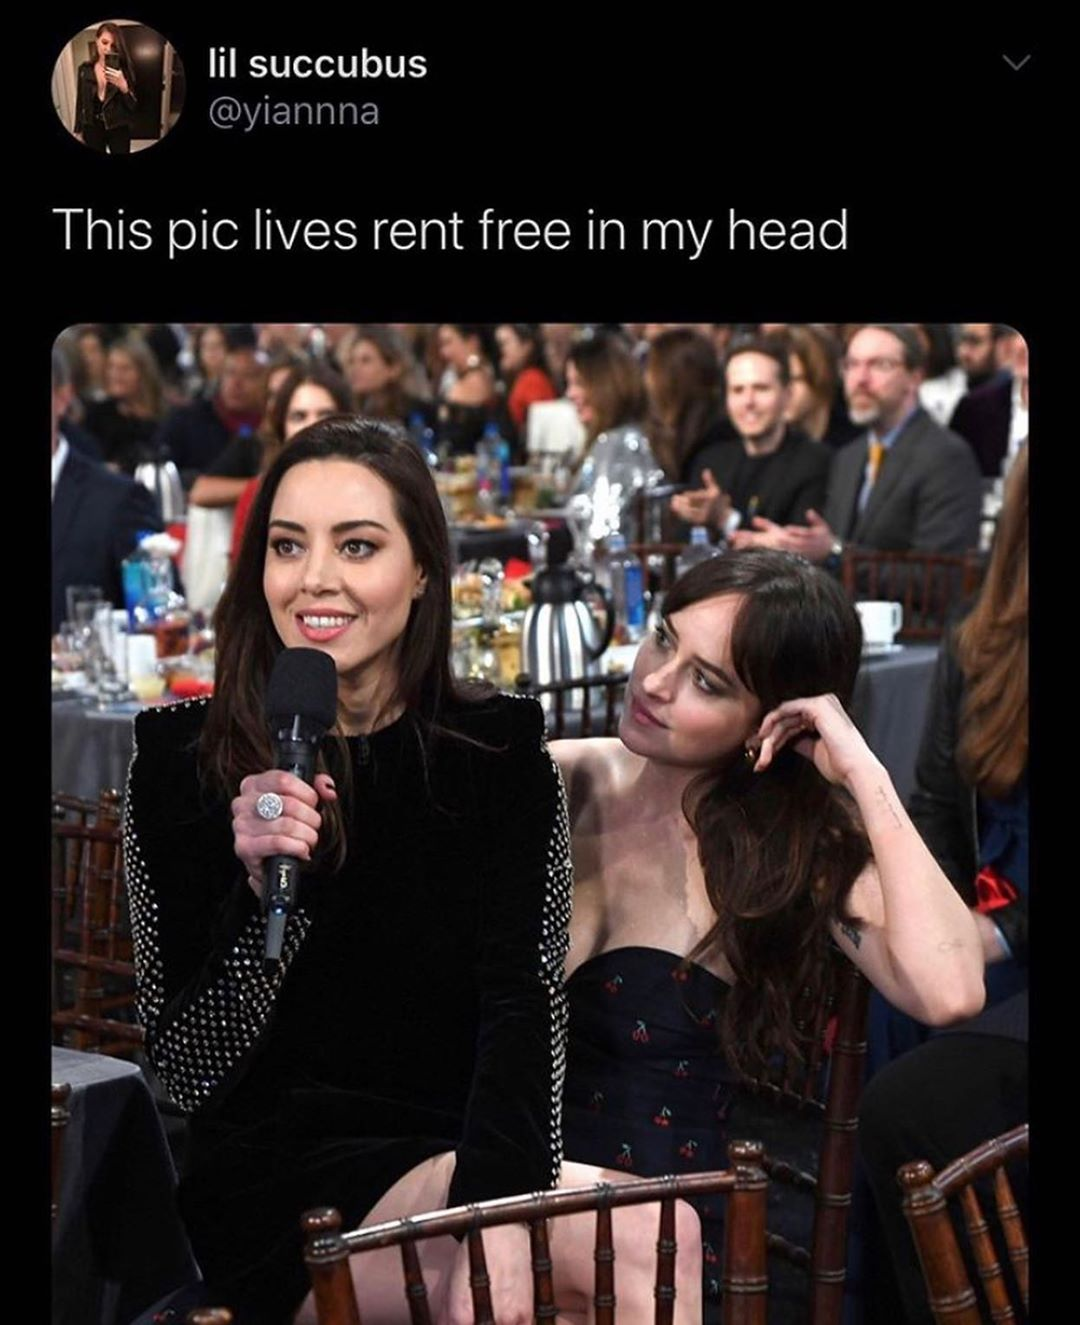 Living rent free in someone's head - post - Imgur